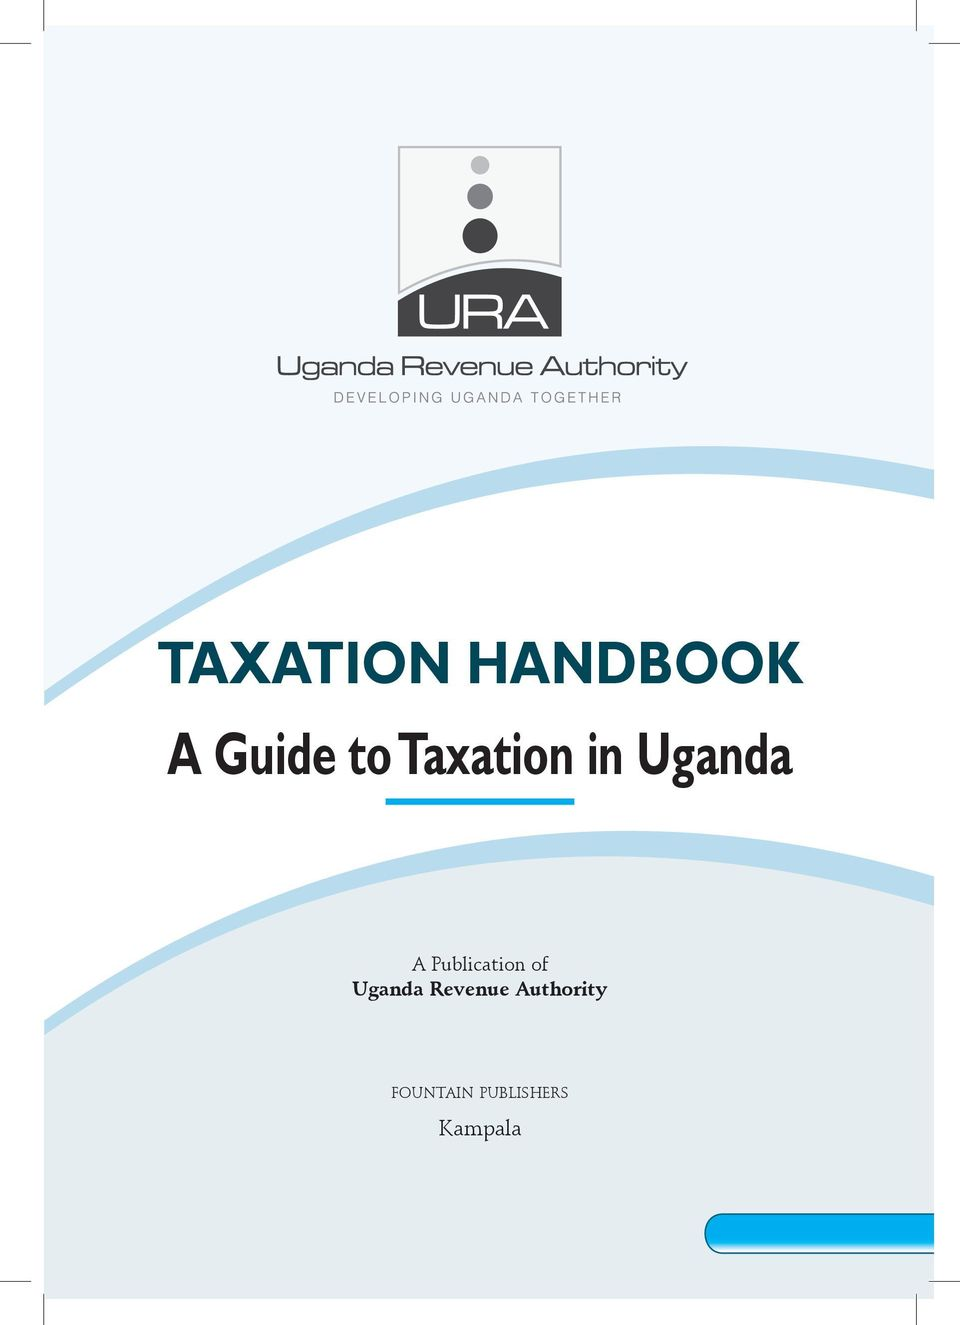 Publication of Uganda Revenue